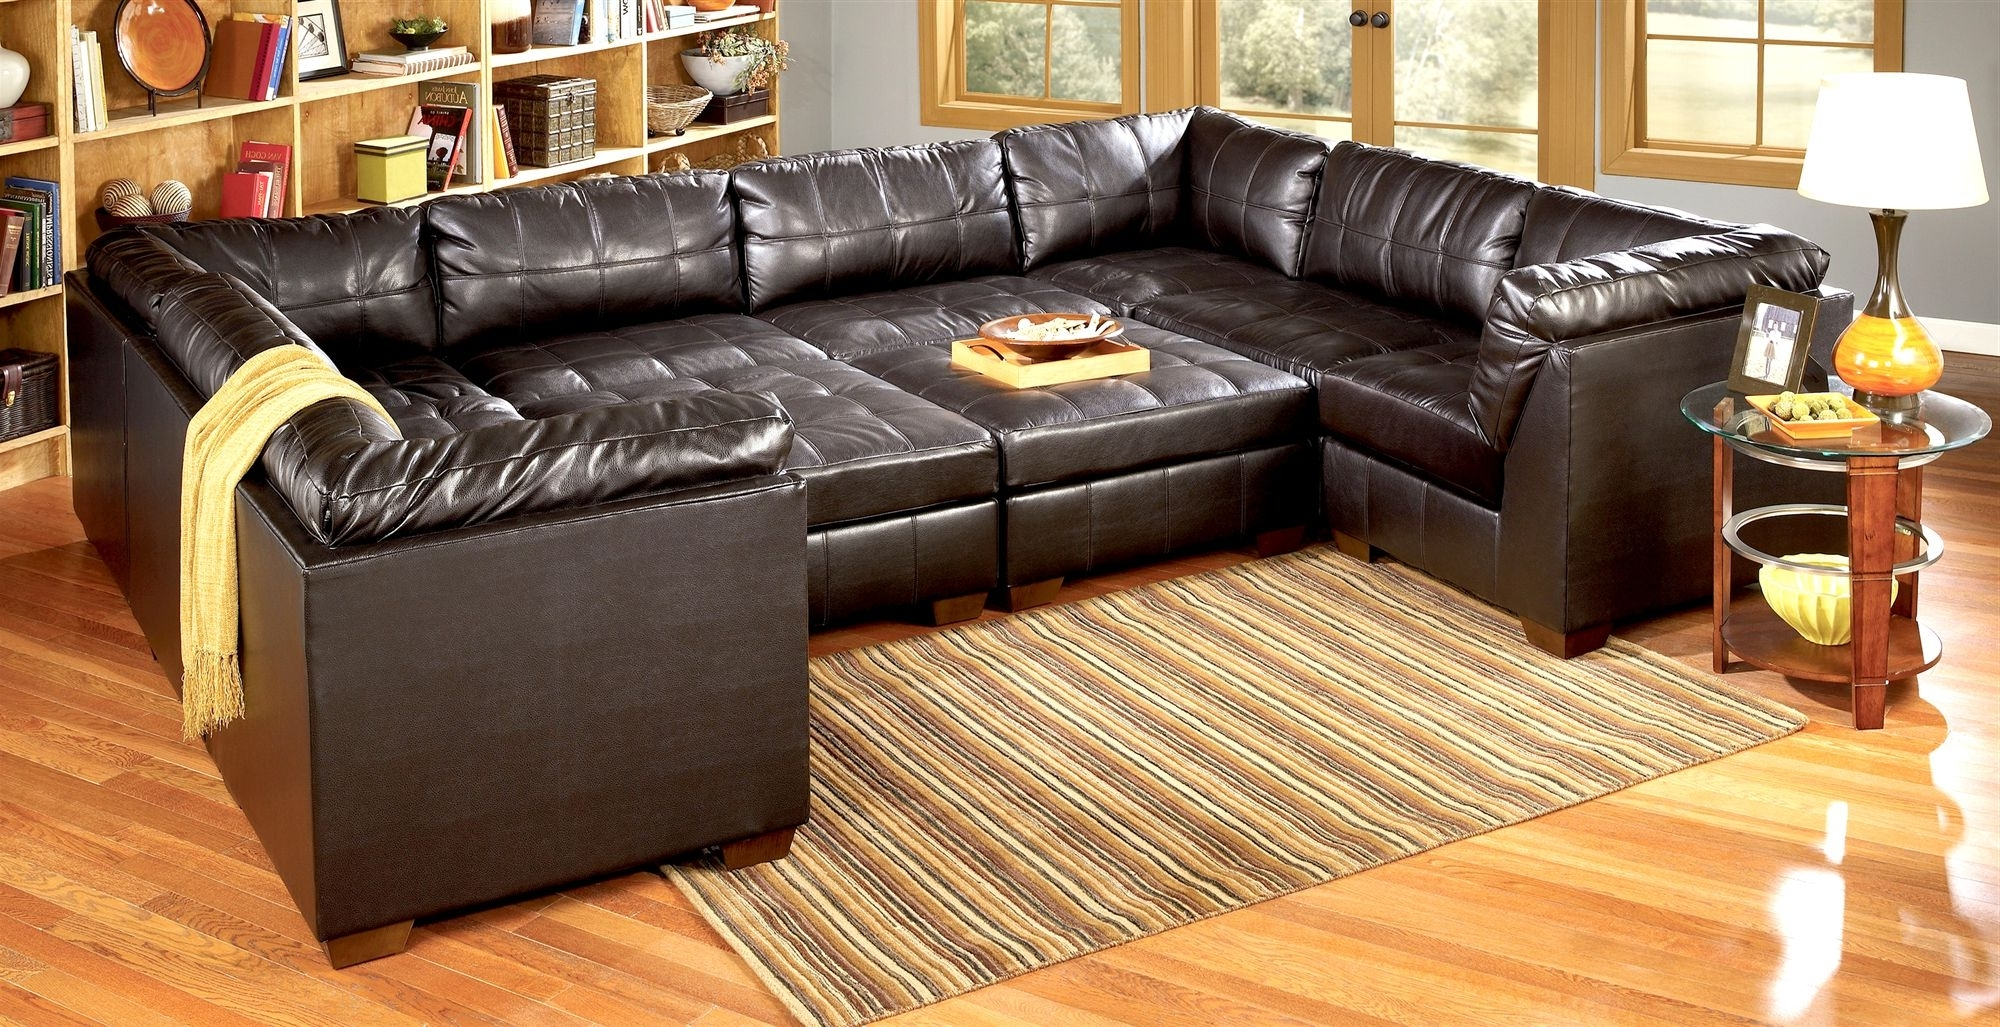 Living Room Furniture : Small Sectional Sofa Sectional Sofas Within Trendy Sectional Sofas For Small Doorways (View 8 of 15)